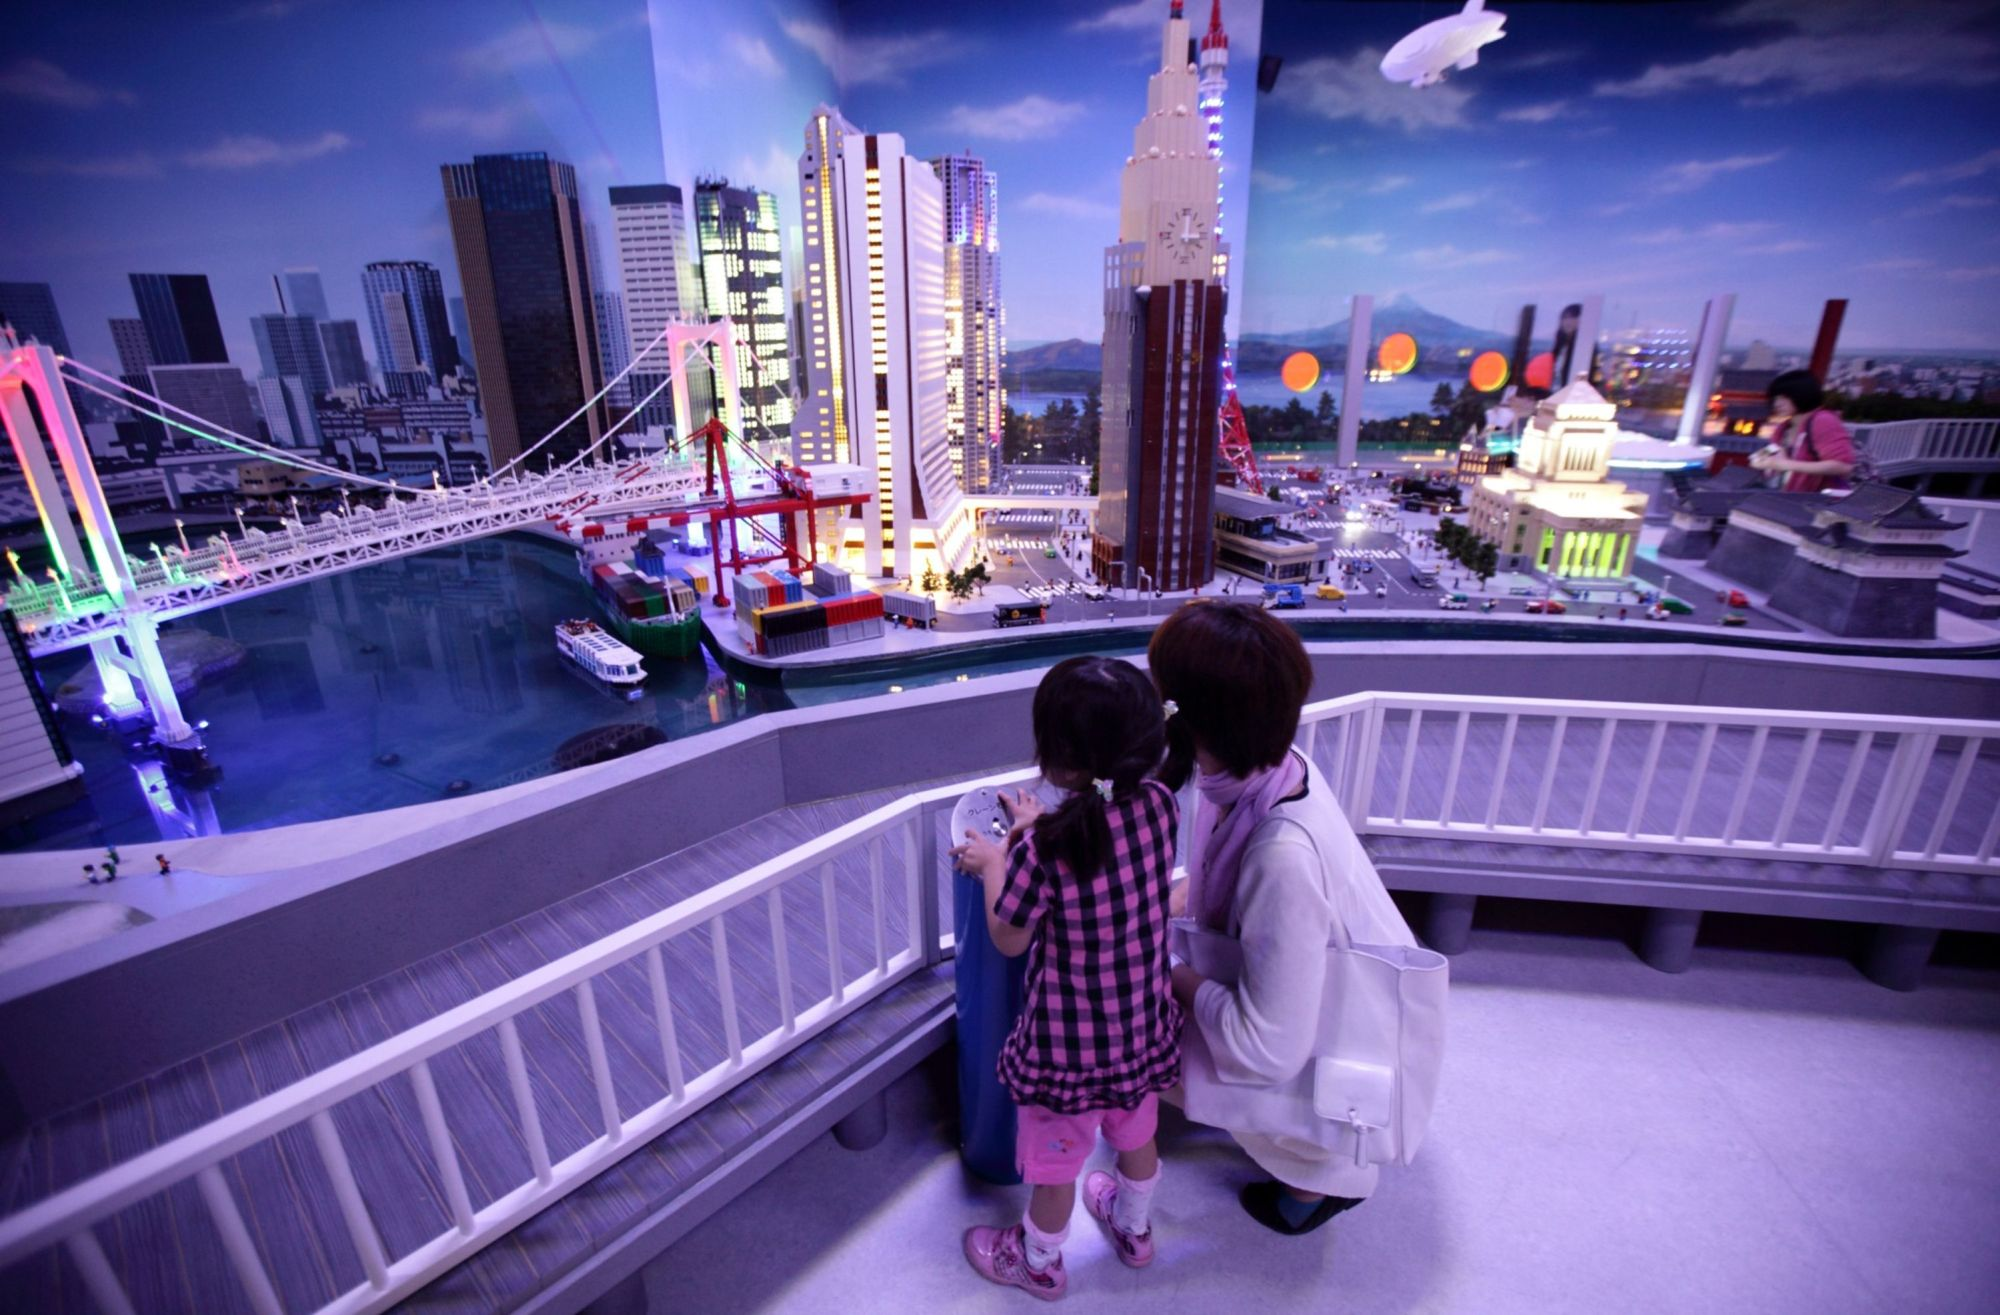 A child and her mother look at a diorama of Tokyo at night made by Lego A/S toy bricks at the Lego Land Discovery Center Tokyo in the capital in June 2012. A confluence of factors that include an aging population, falling birth rates and anachronistic gender dynamics are conspiring to damage women's prospects for a comfortable retirement. | BLOOMBERG